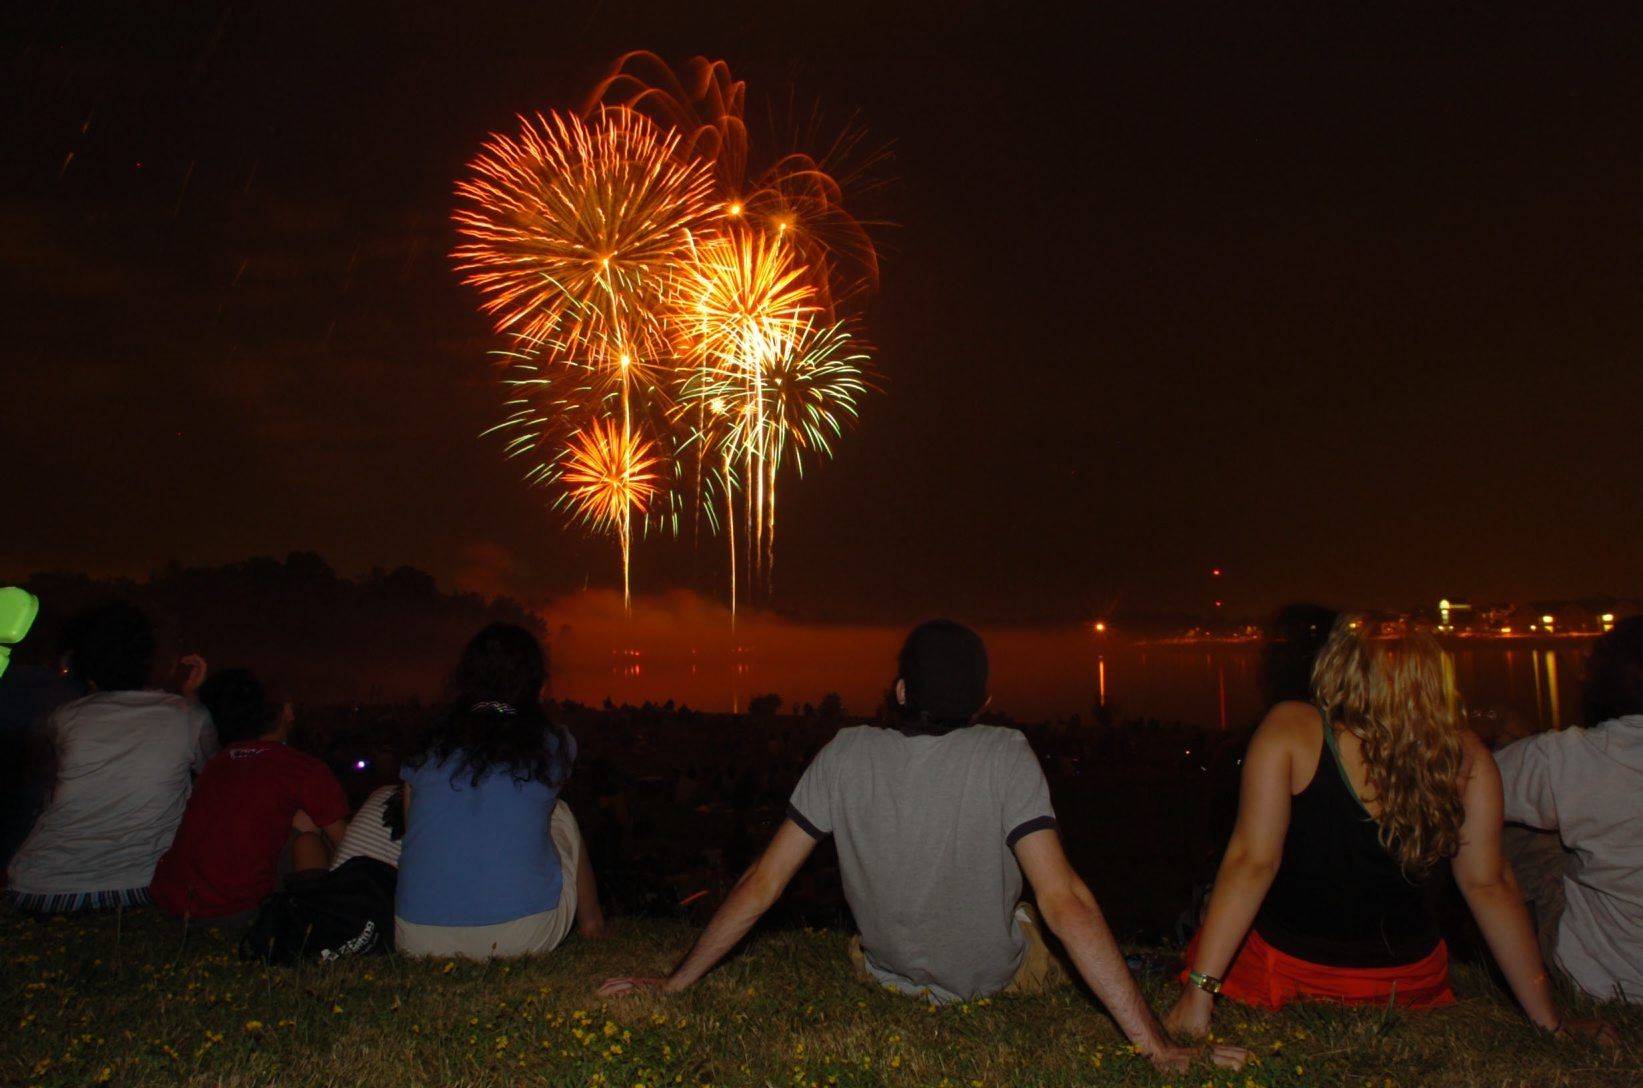 Spectators watch the fireworks display over  Baird Point on the University at Buffalo Amherst Campus in 2005.